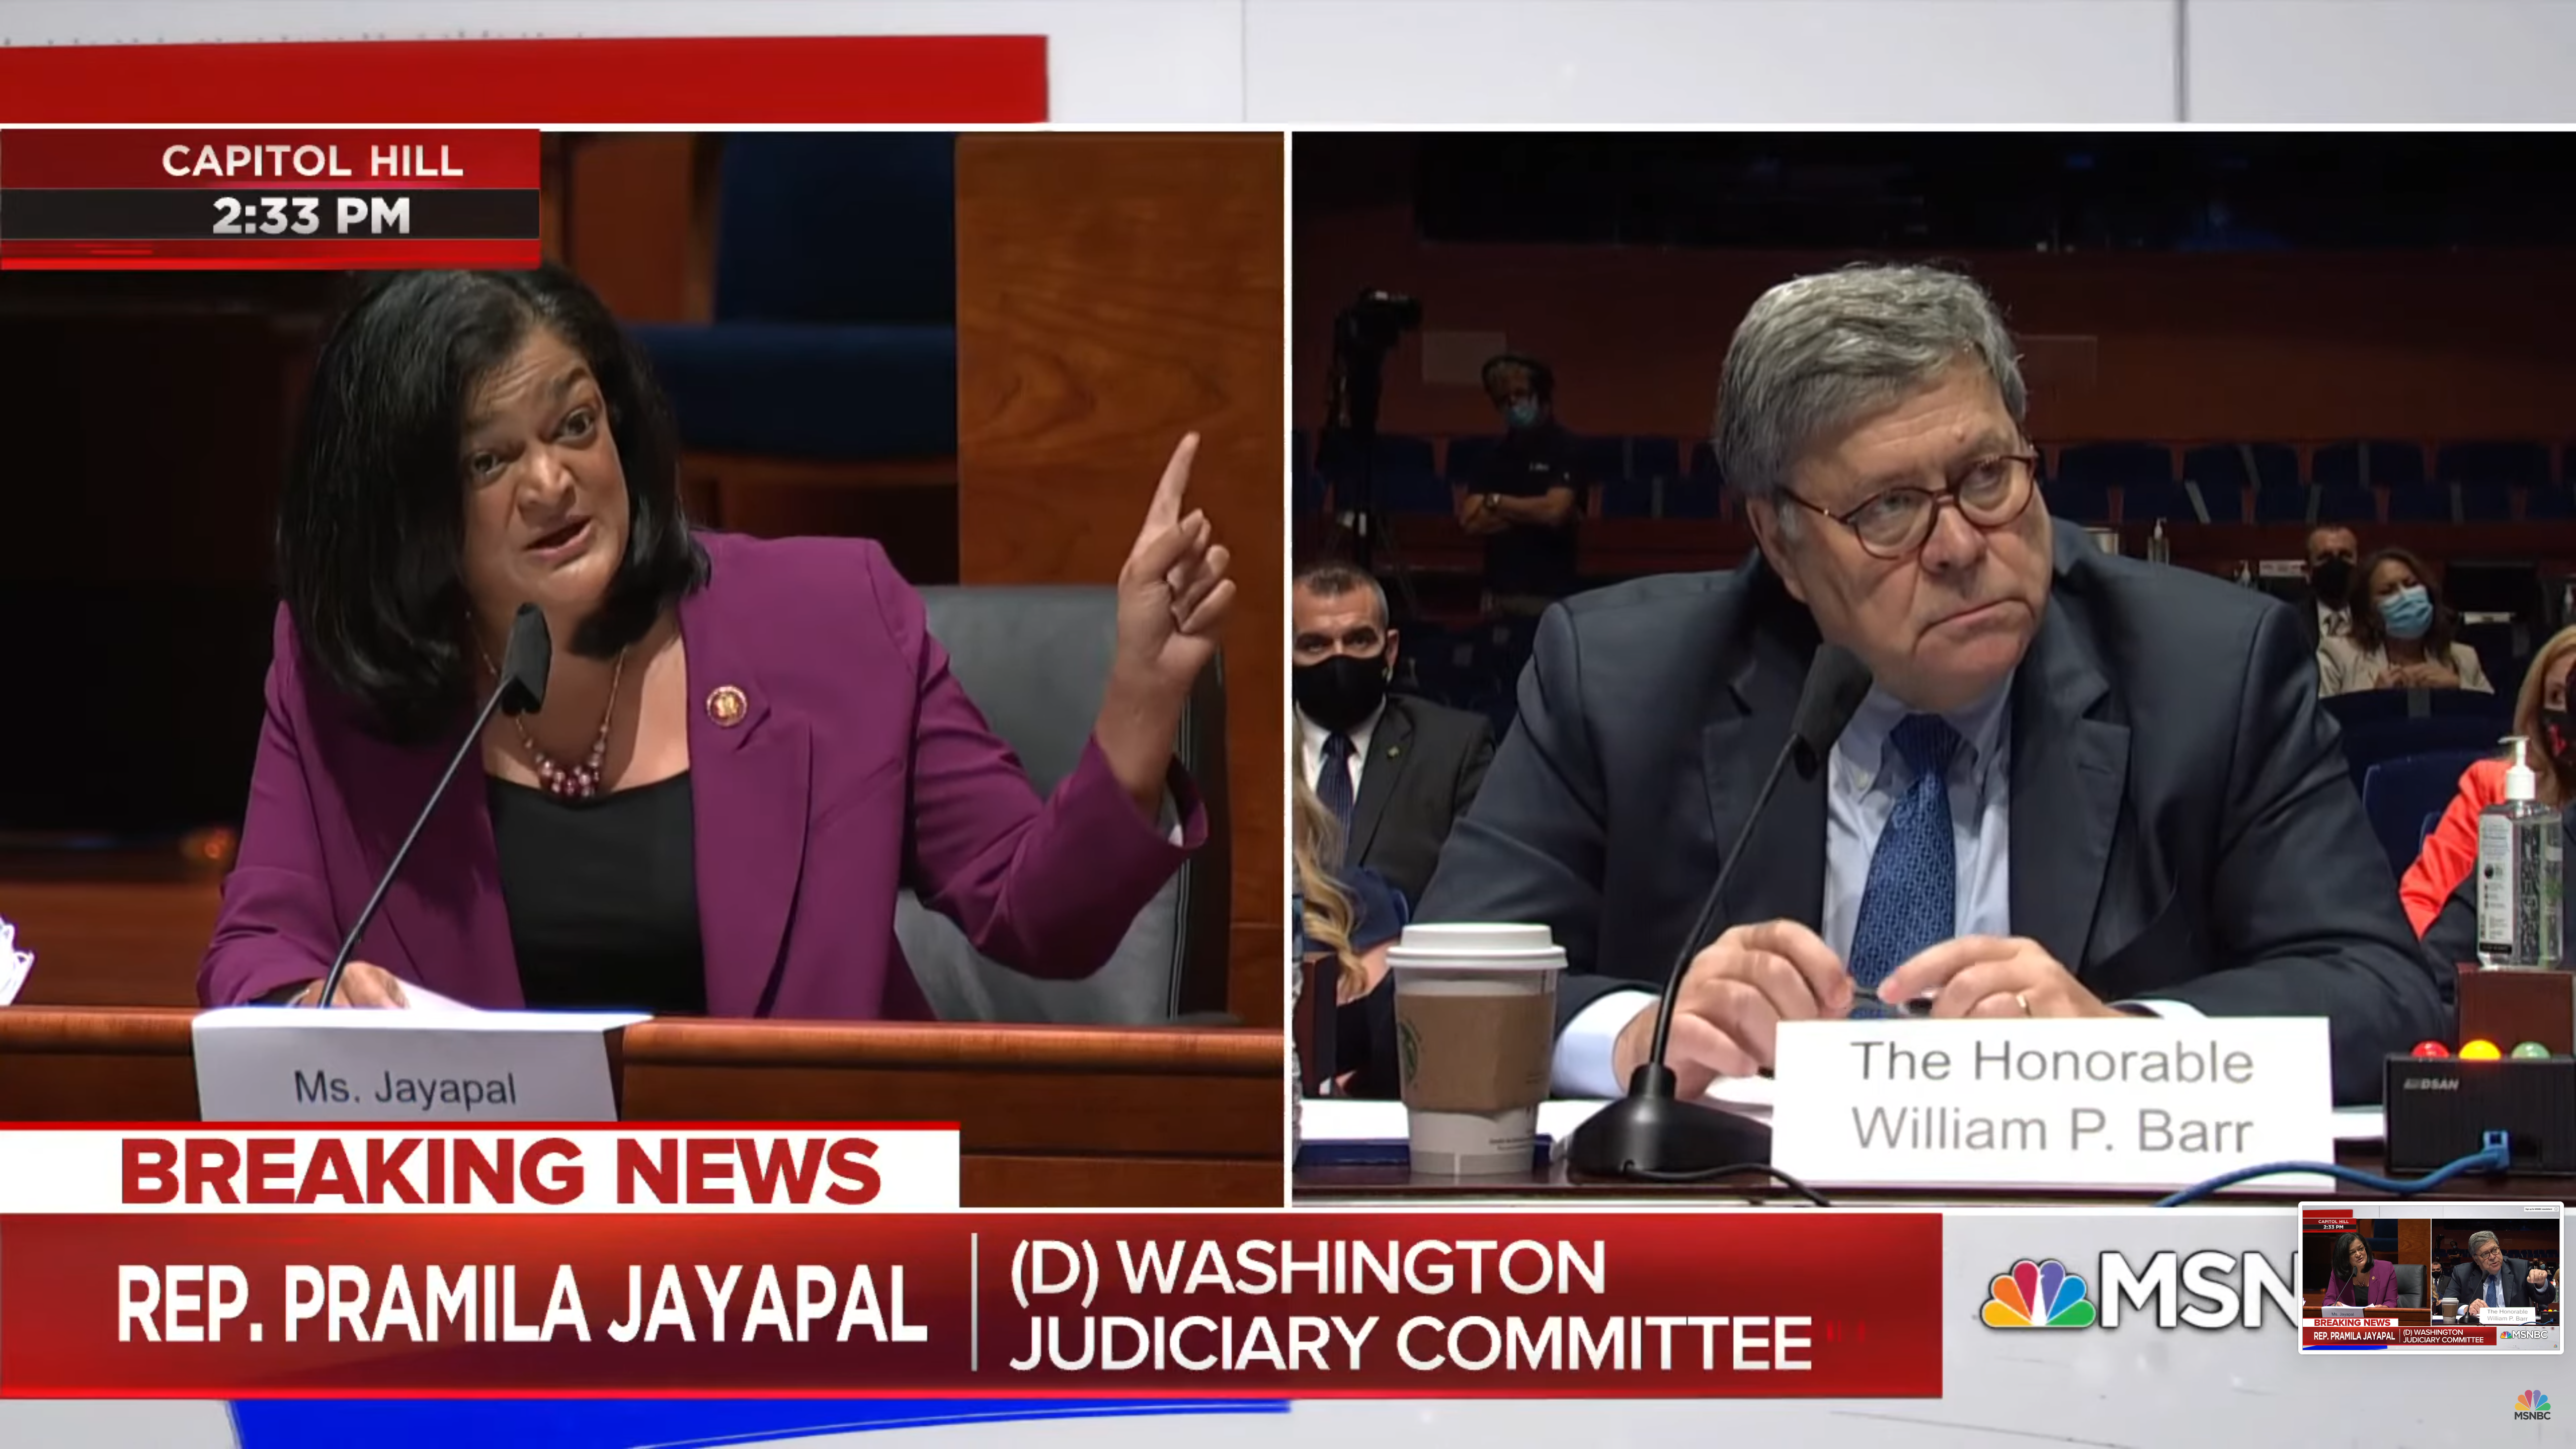 Pramila Jayapal vs. Bill Barr